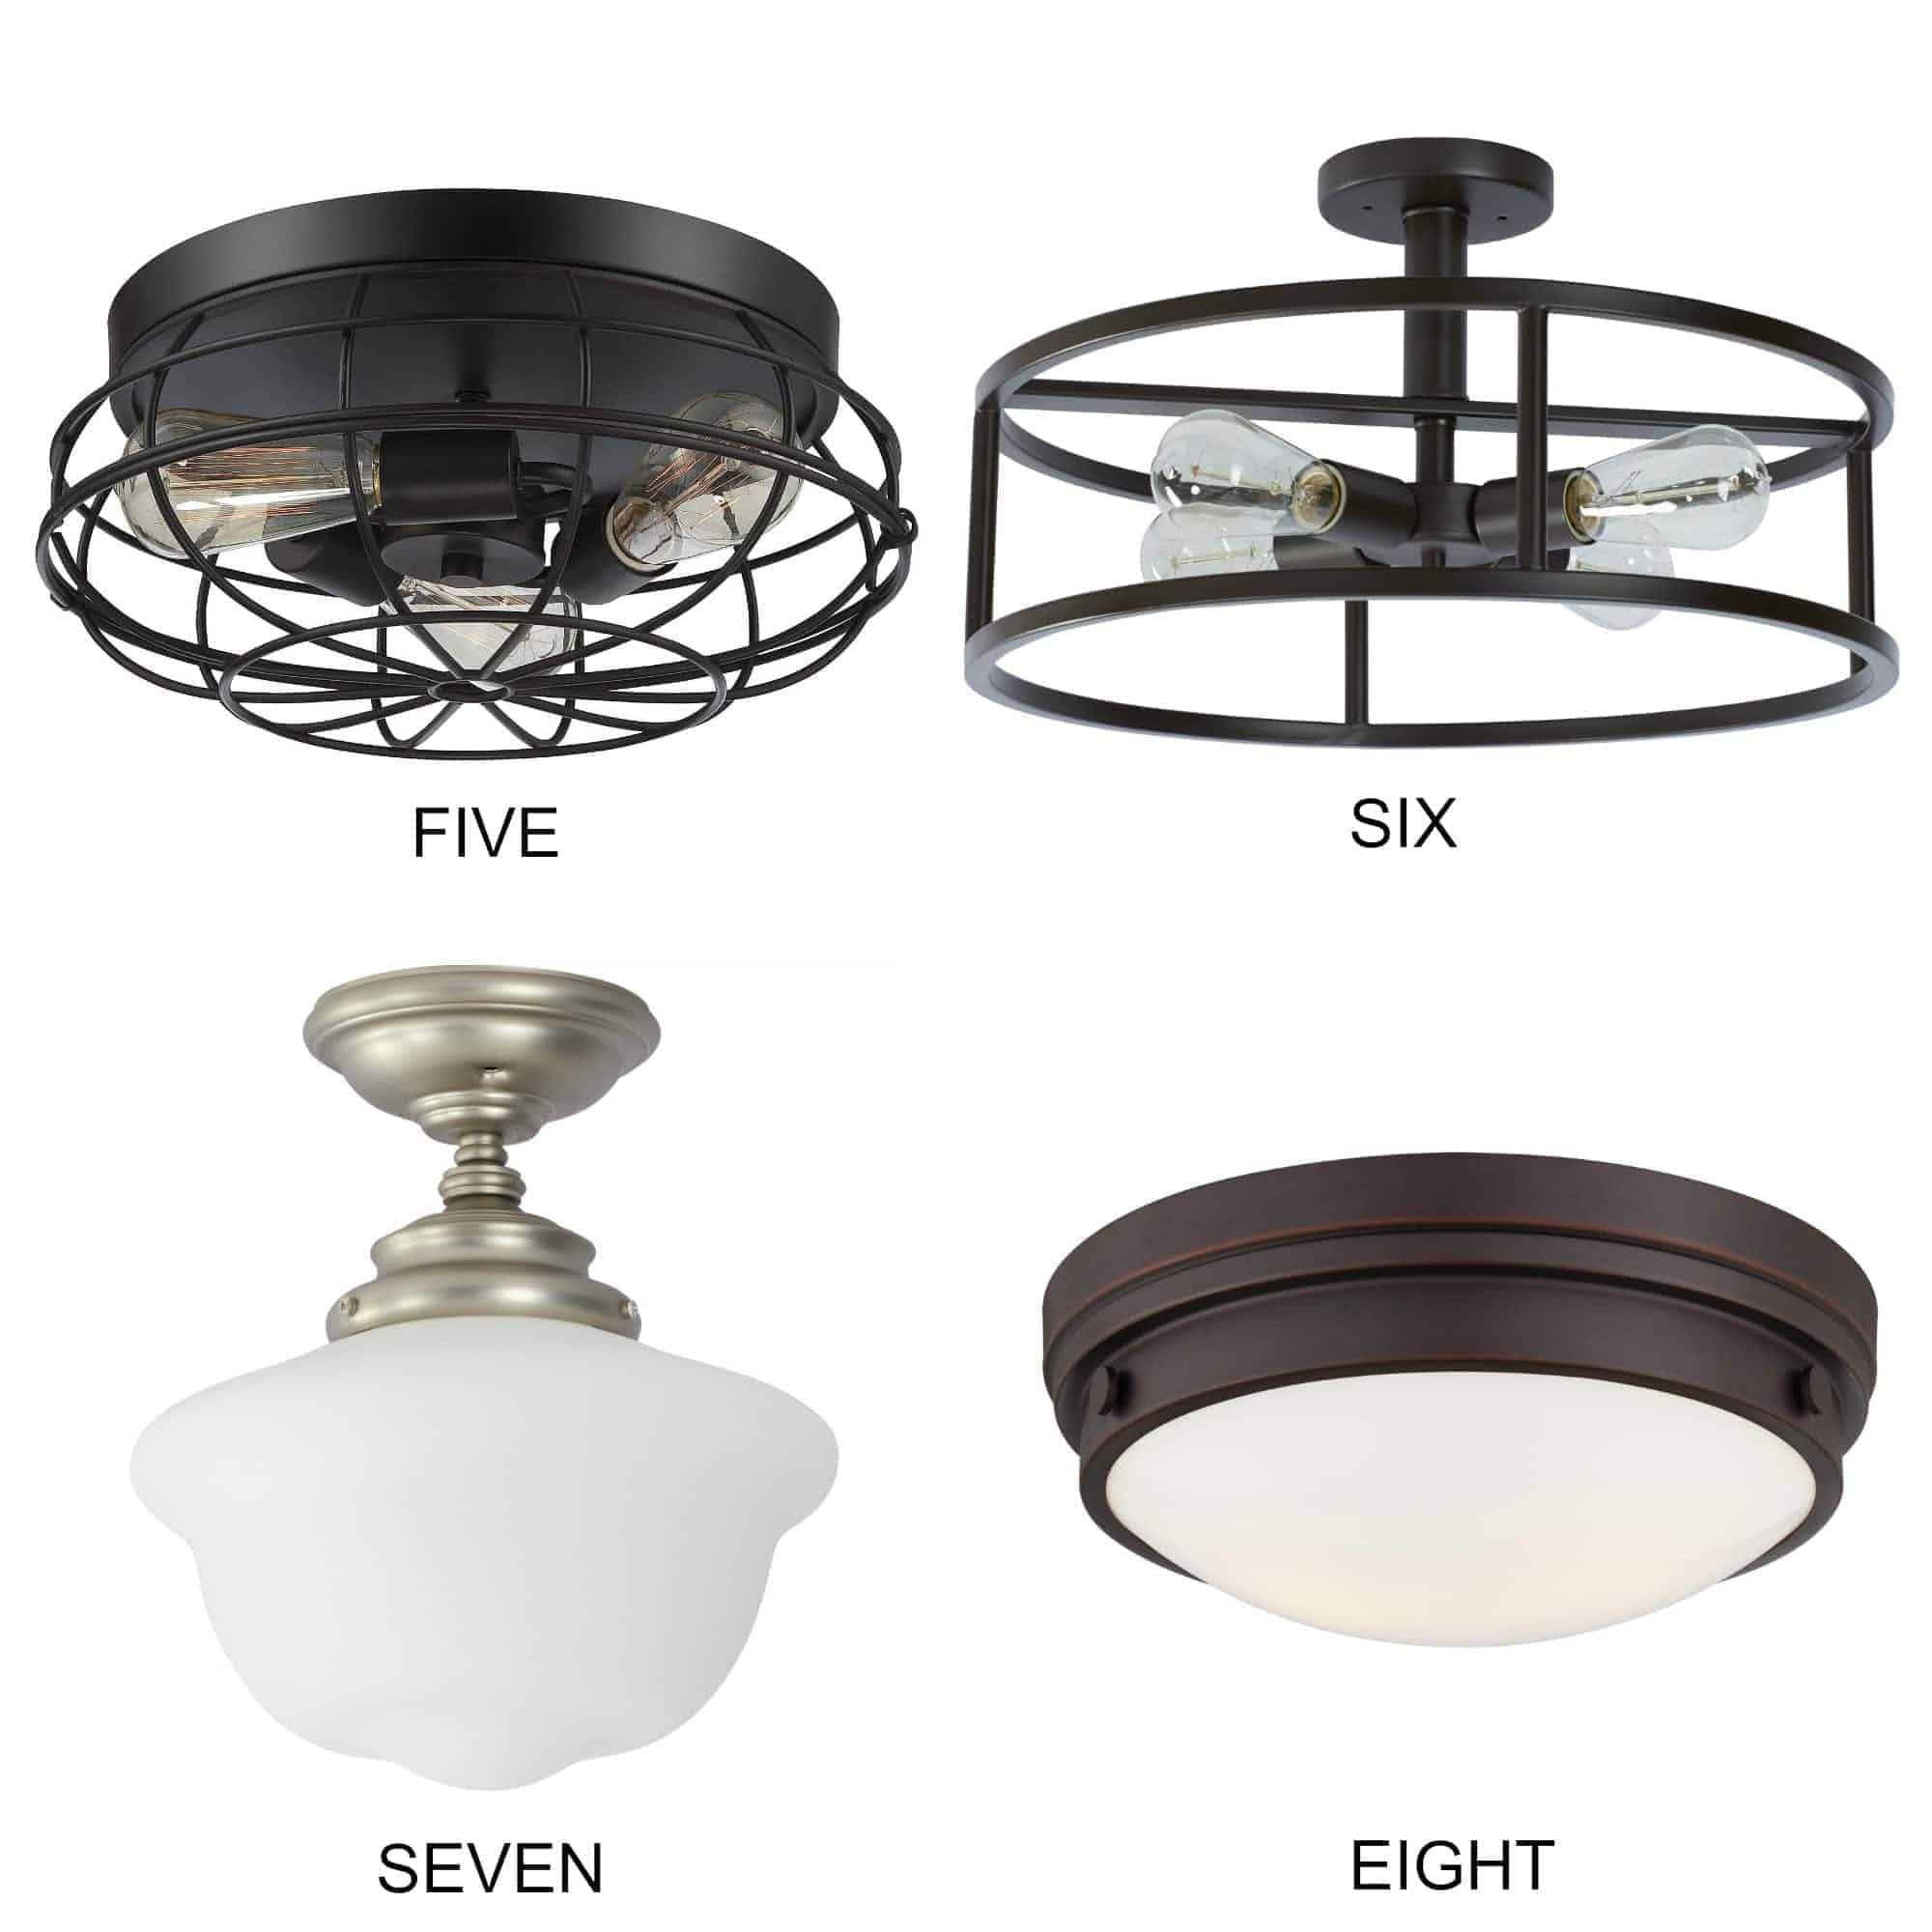 8 flush mount kitchen lighting fixture ideas that will add farmhouse style to your space. | Chatfield Court